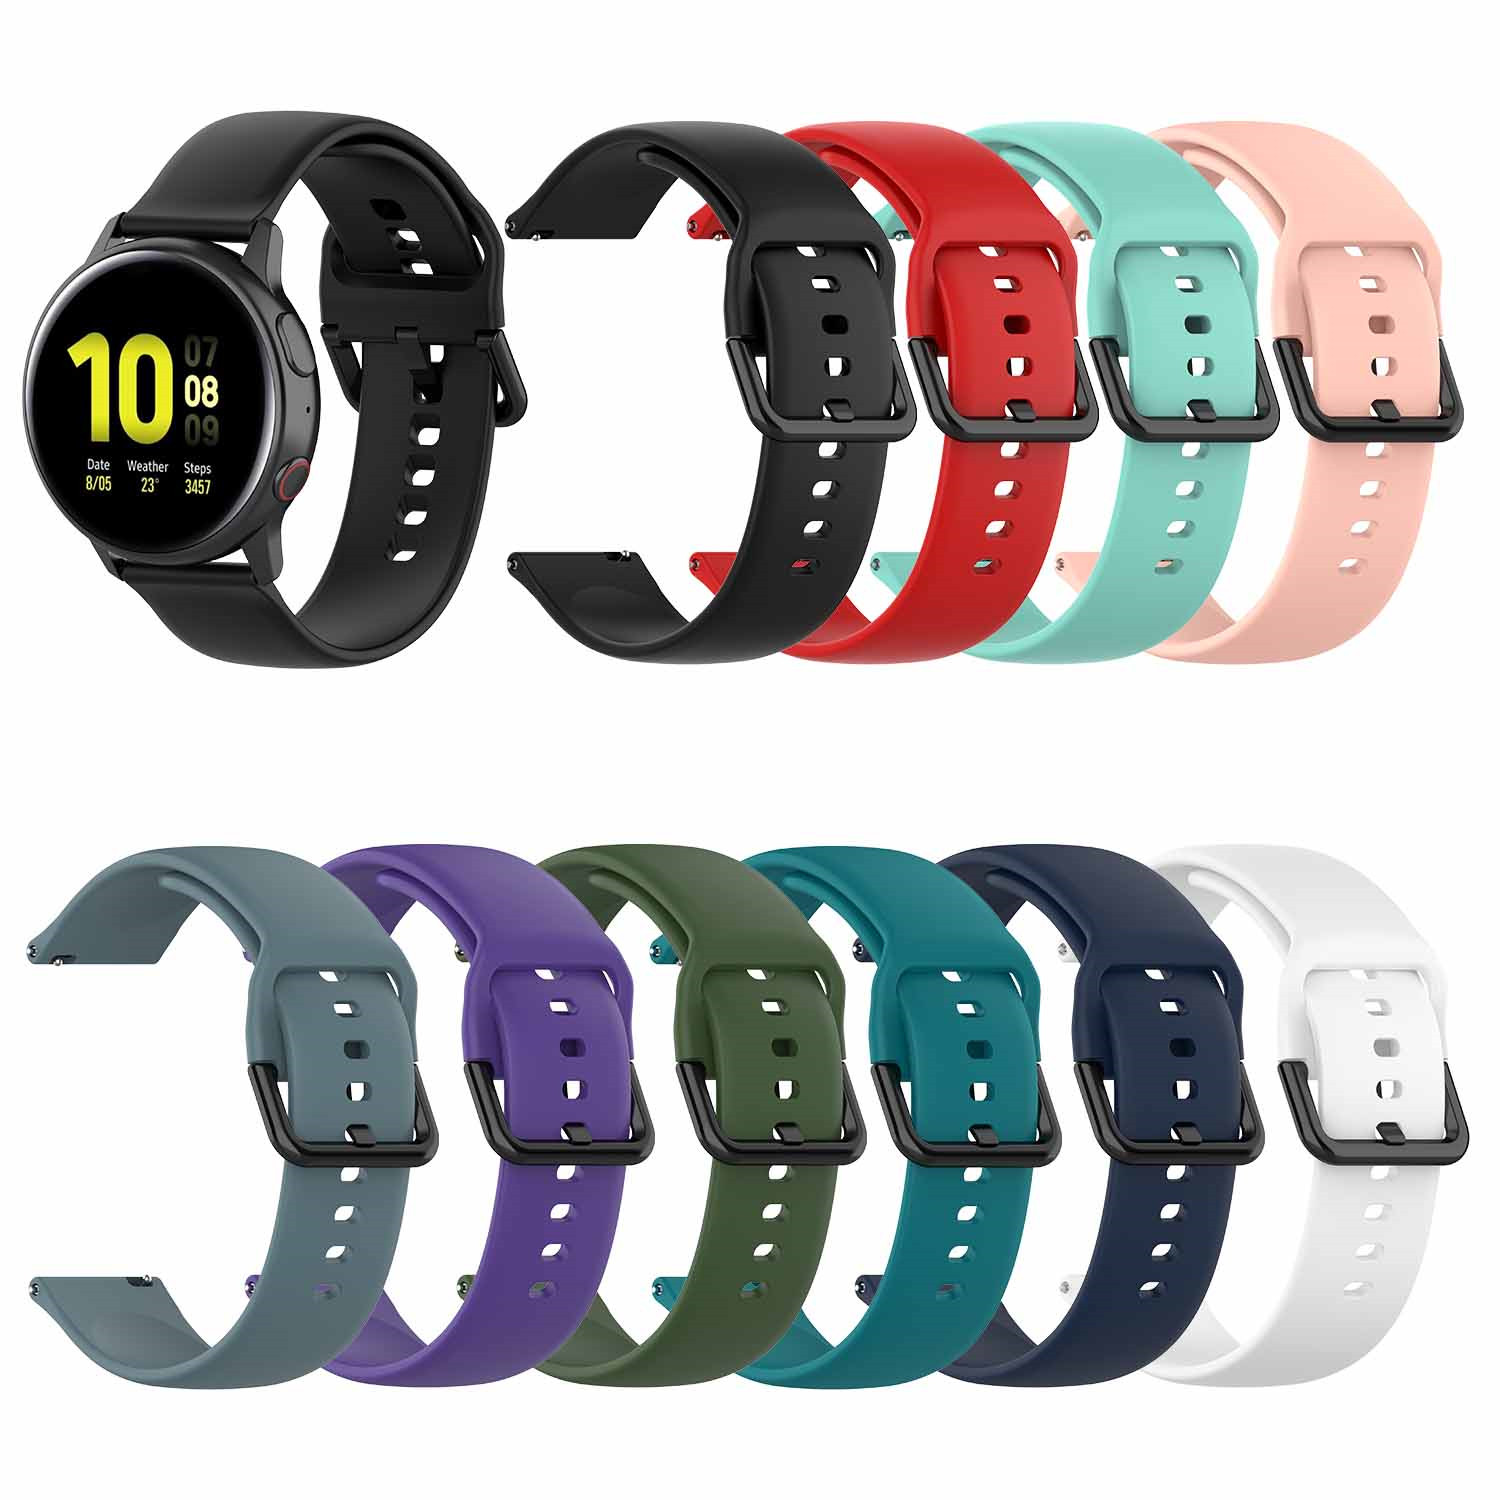 20MM Stainless Steel Metal Strap For Samsung Galaxy Watch Active / Active 2 40mm 44mm Bands Smart Watches Small Large Bracelet